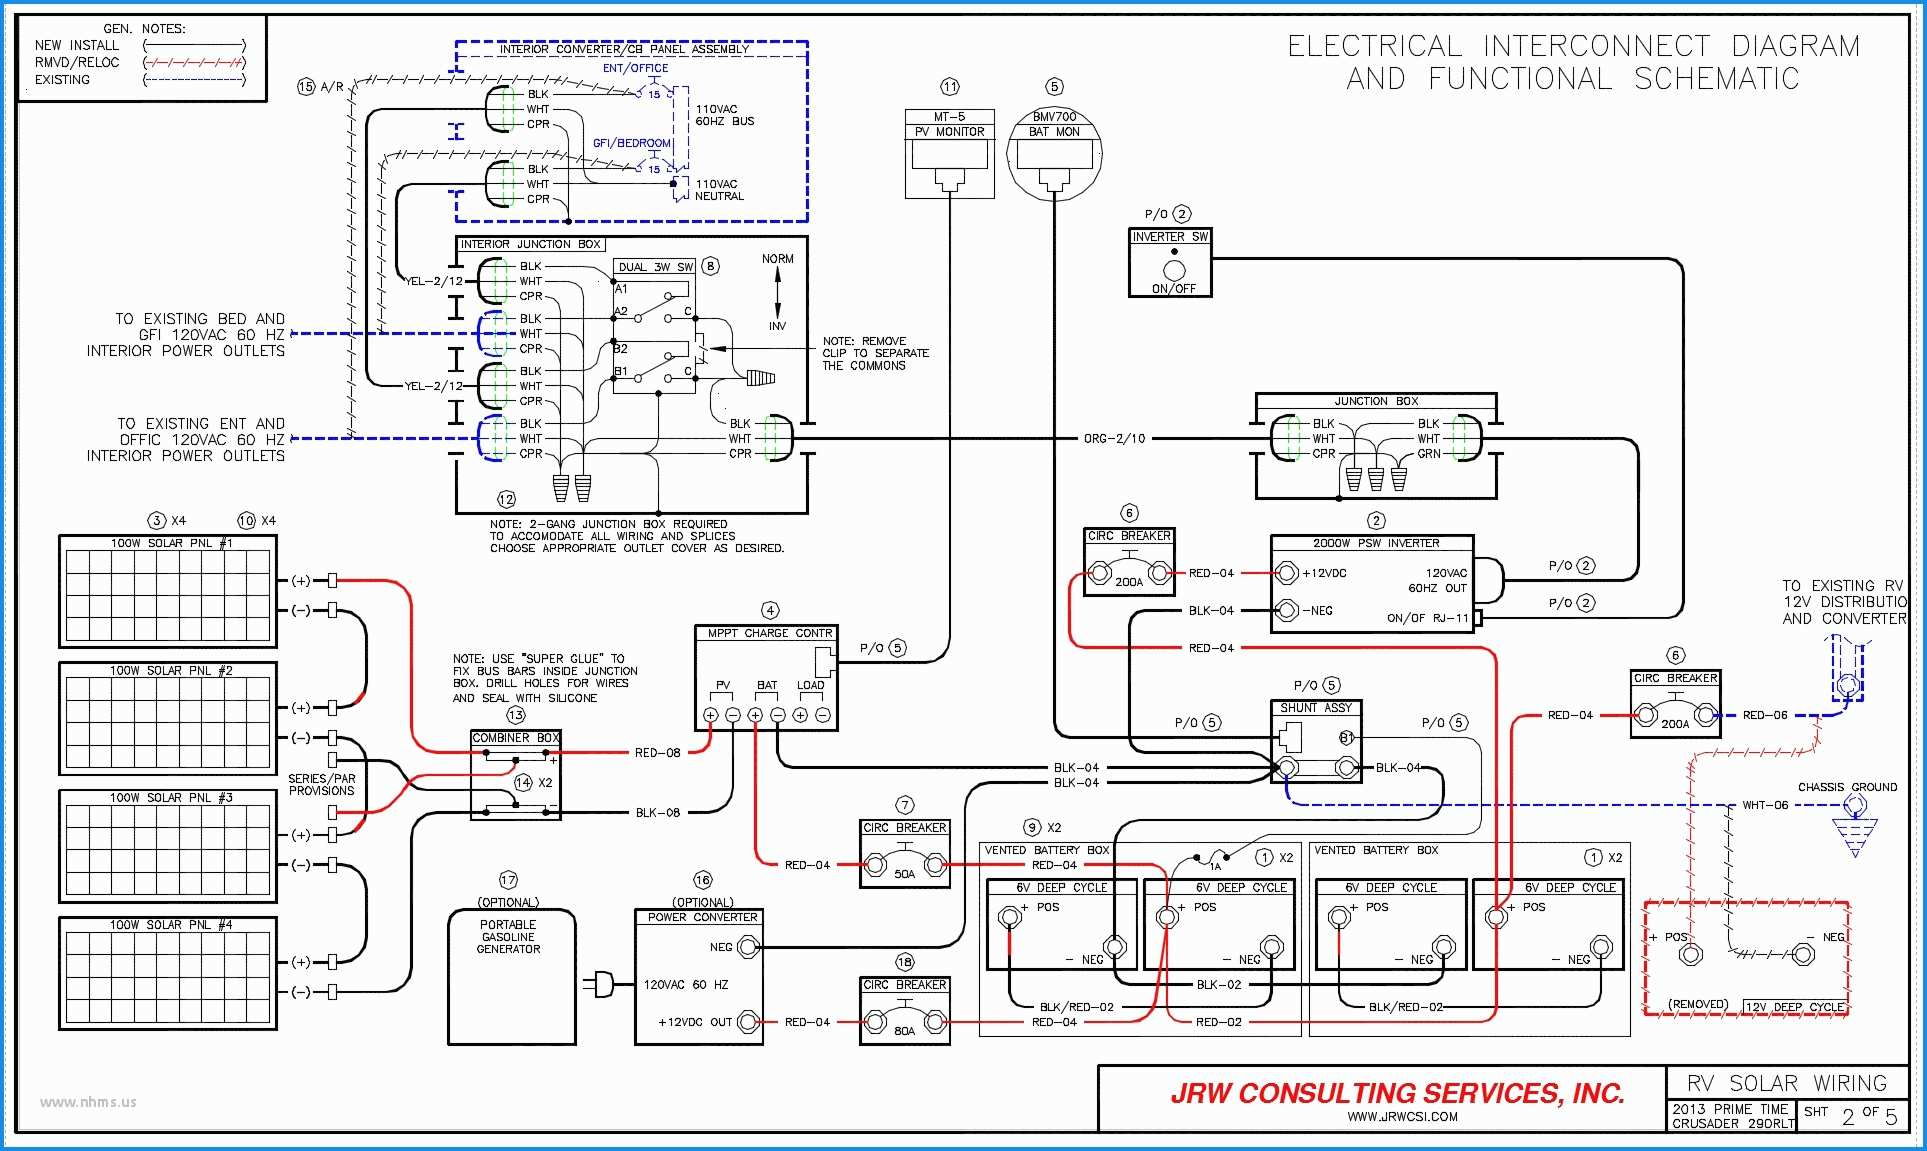 Winnebago Ac Wiring Diagram | Manual E-Books - Winnebago Wiring Diagram